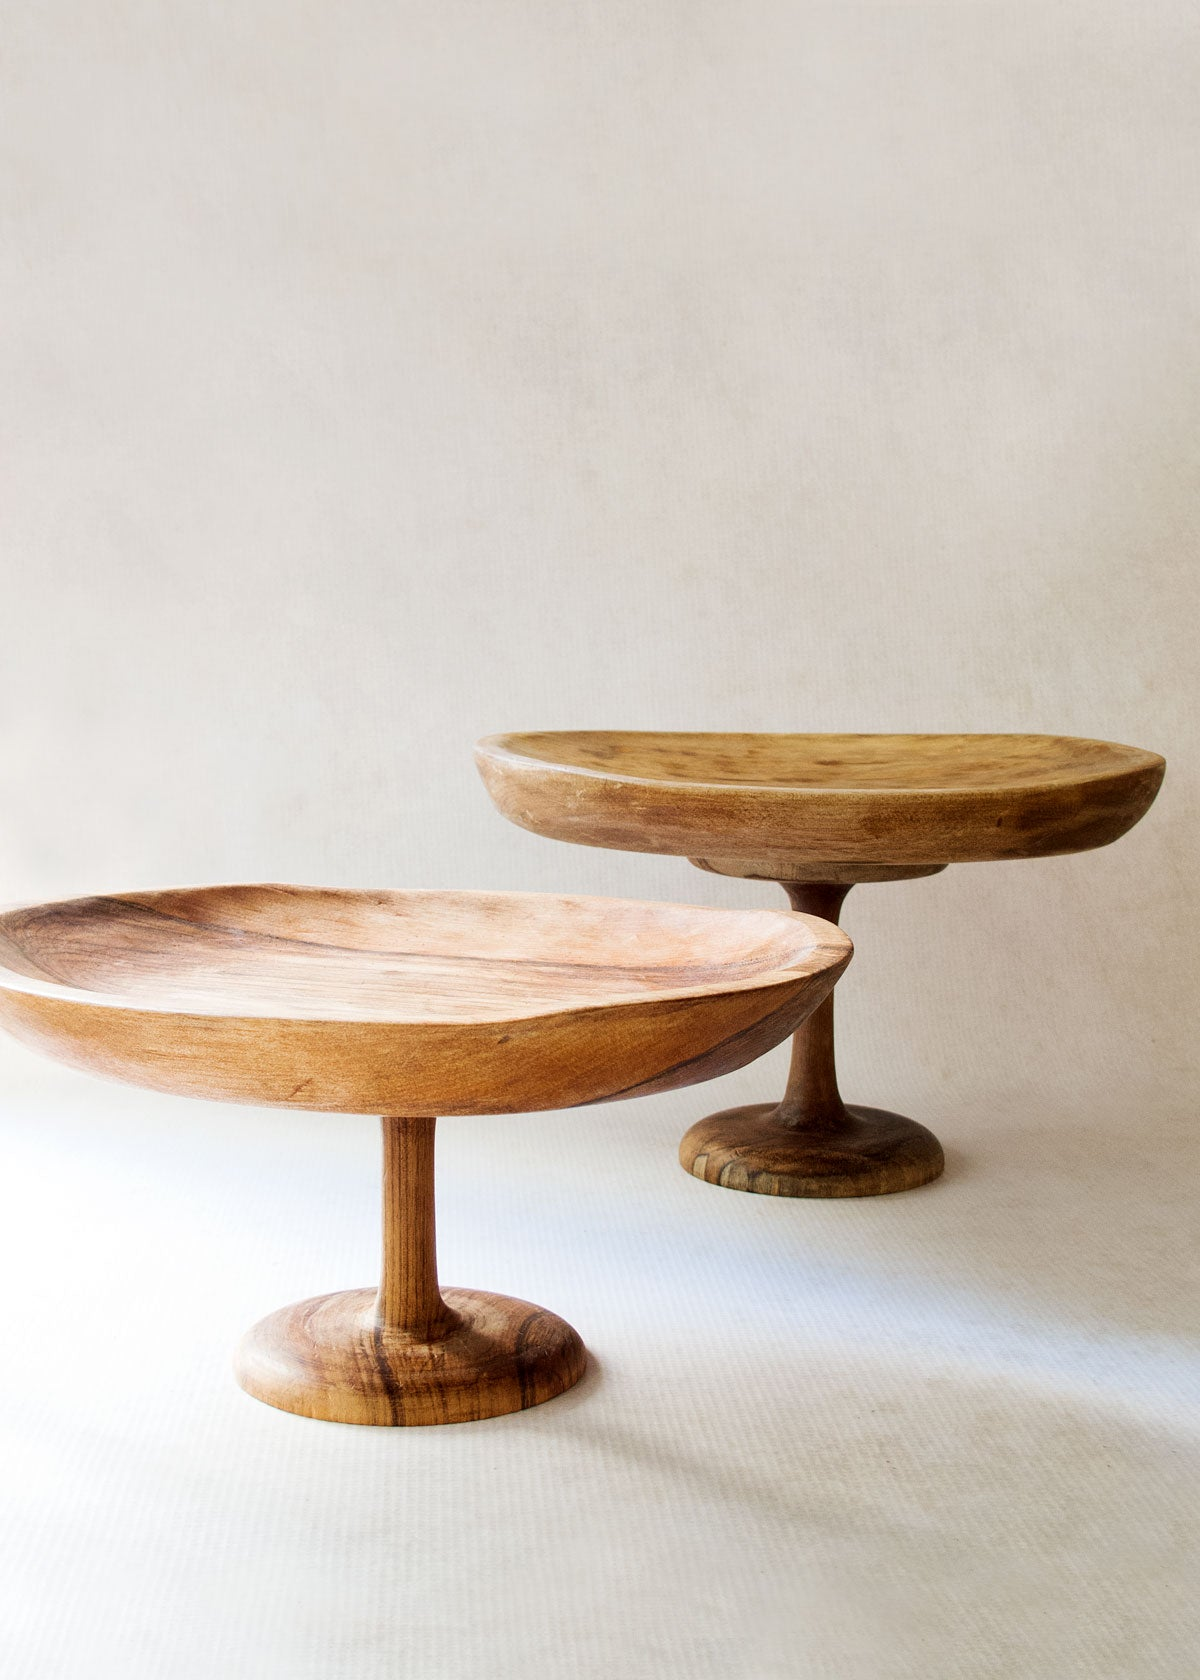 Teak Wood Hand Carved Cake Stand